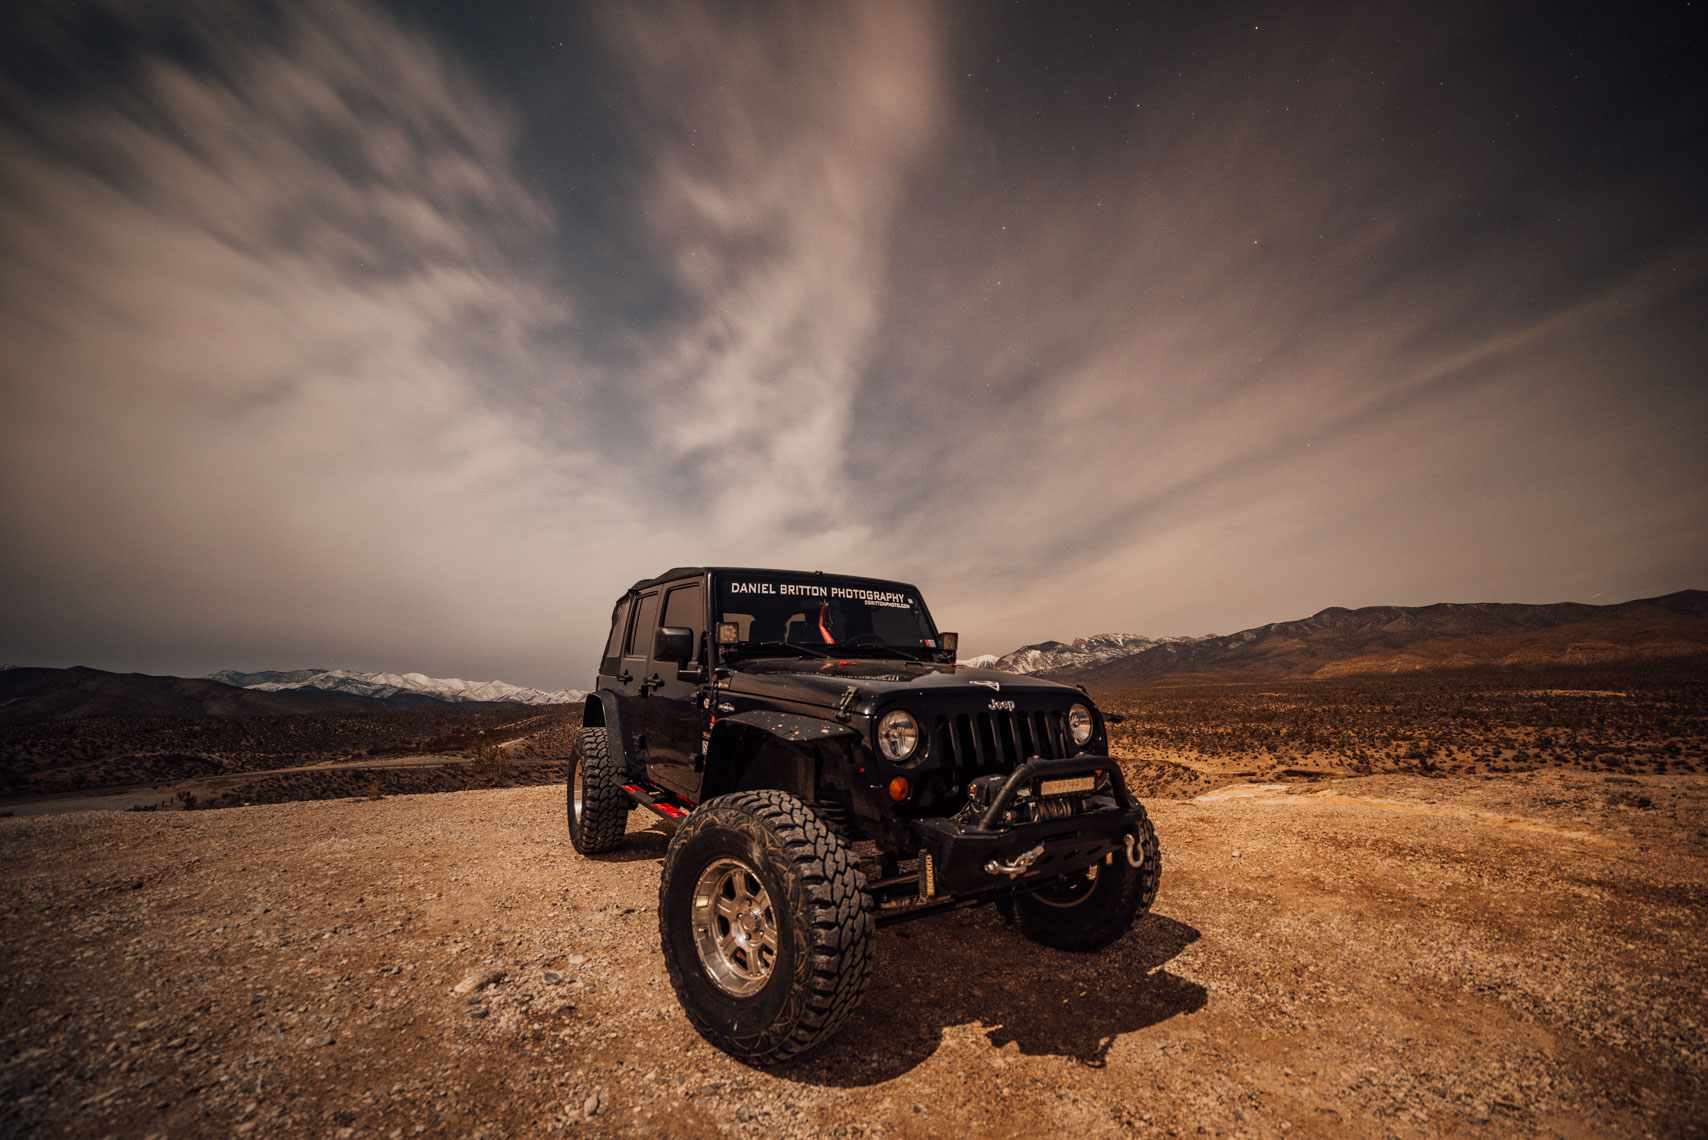 Jeep Wrangler, Night Photography, Automobile, Adventure Lifestyle Photographer Daniel Britton